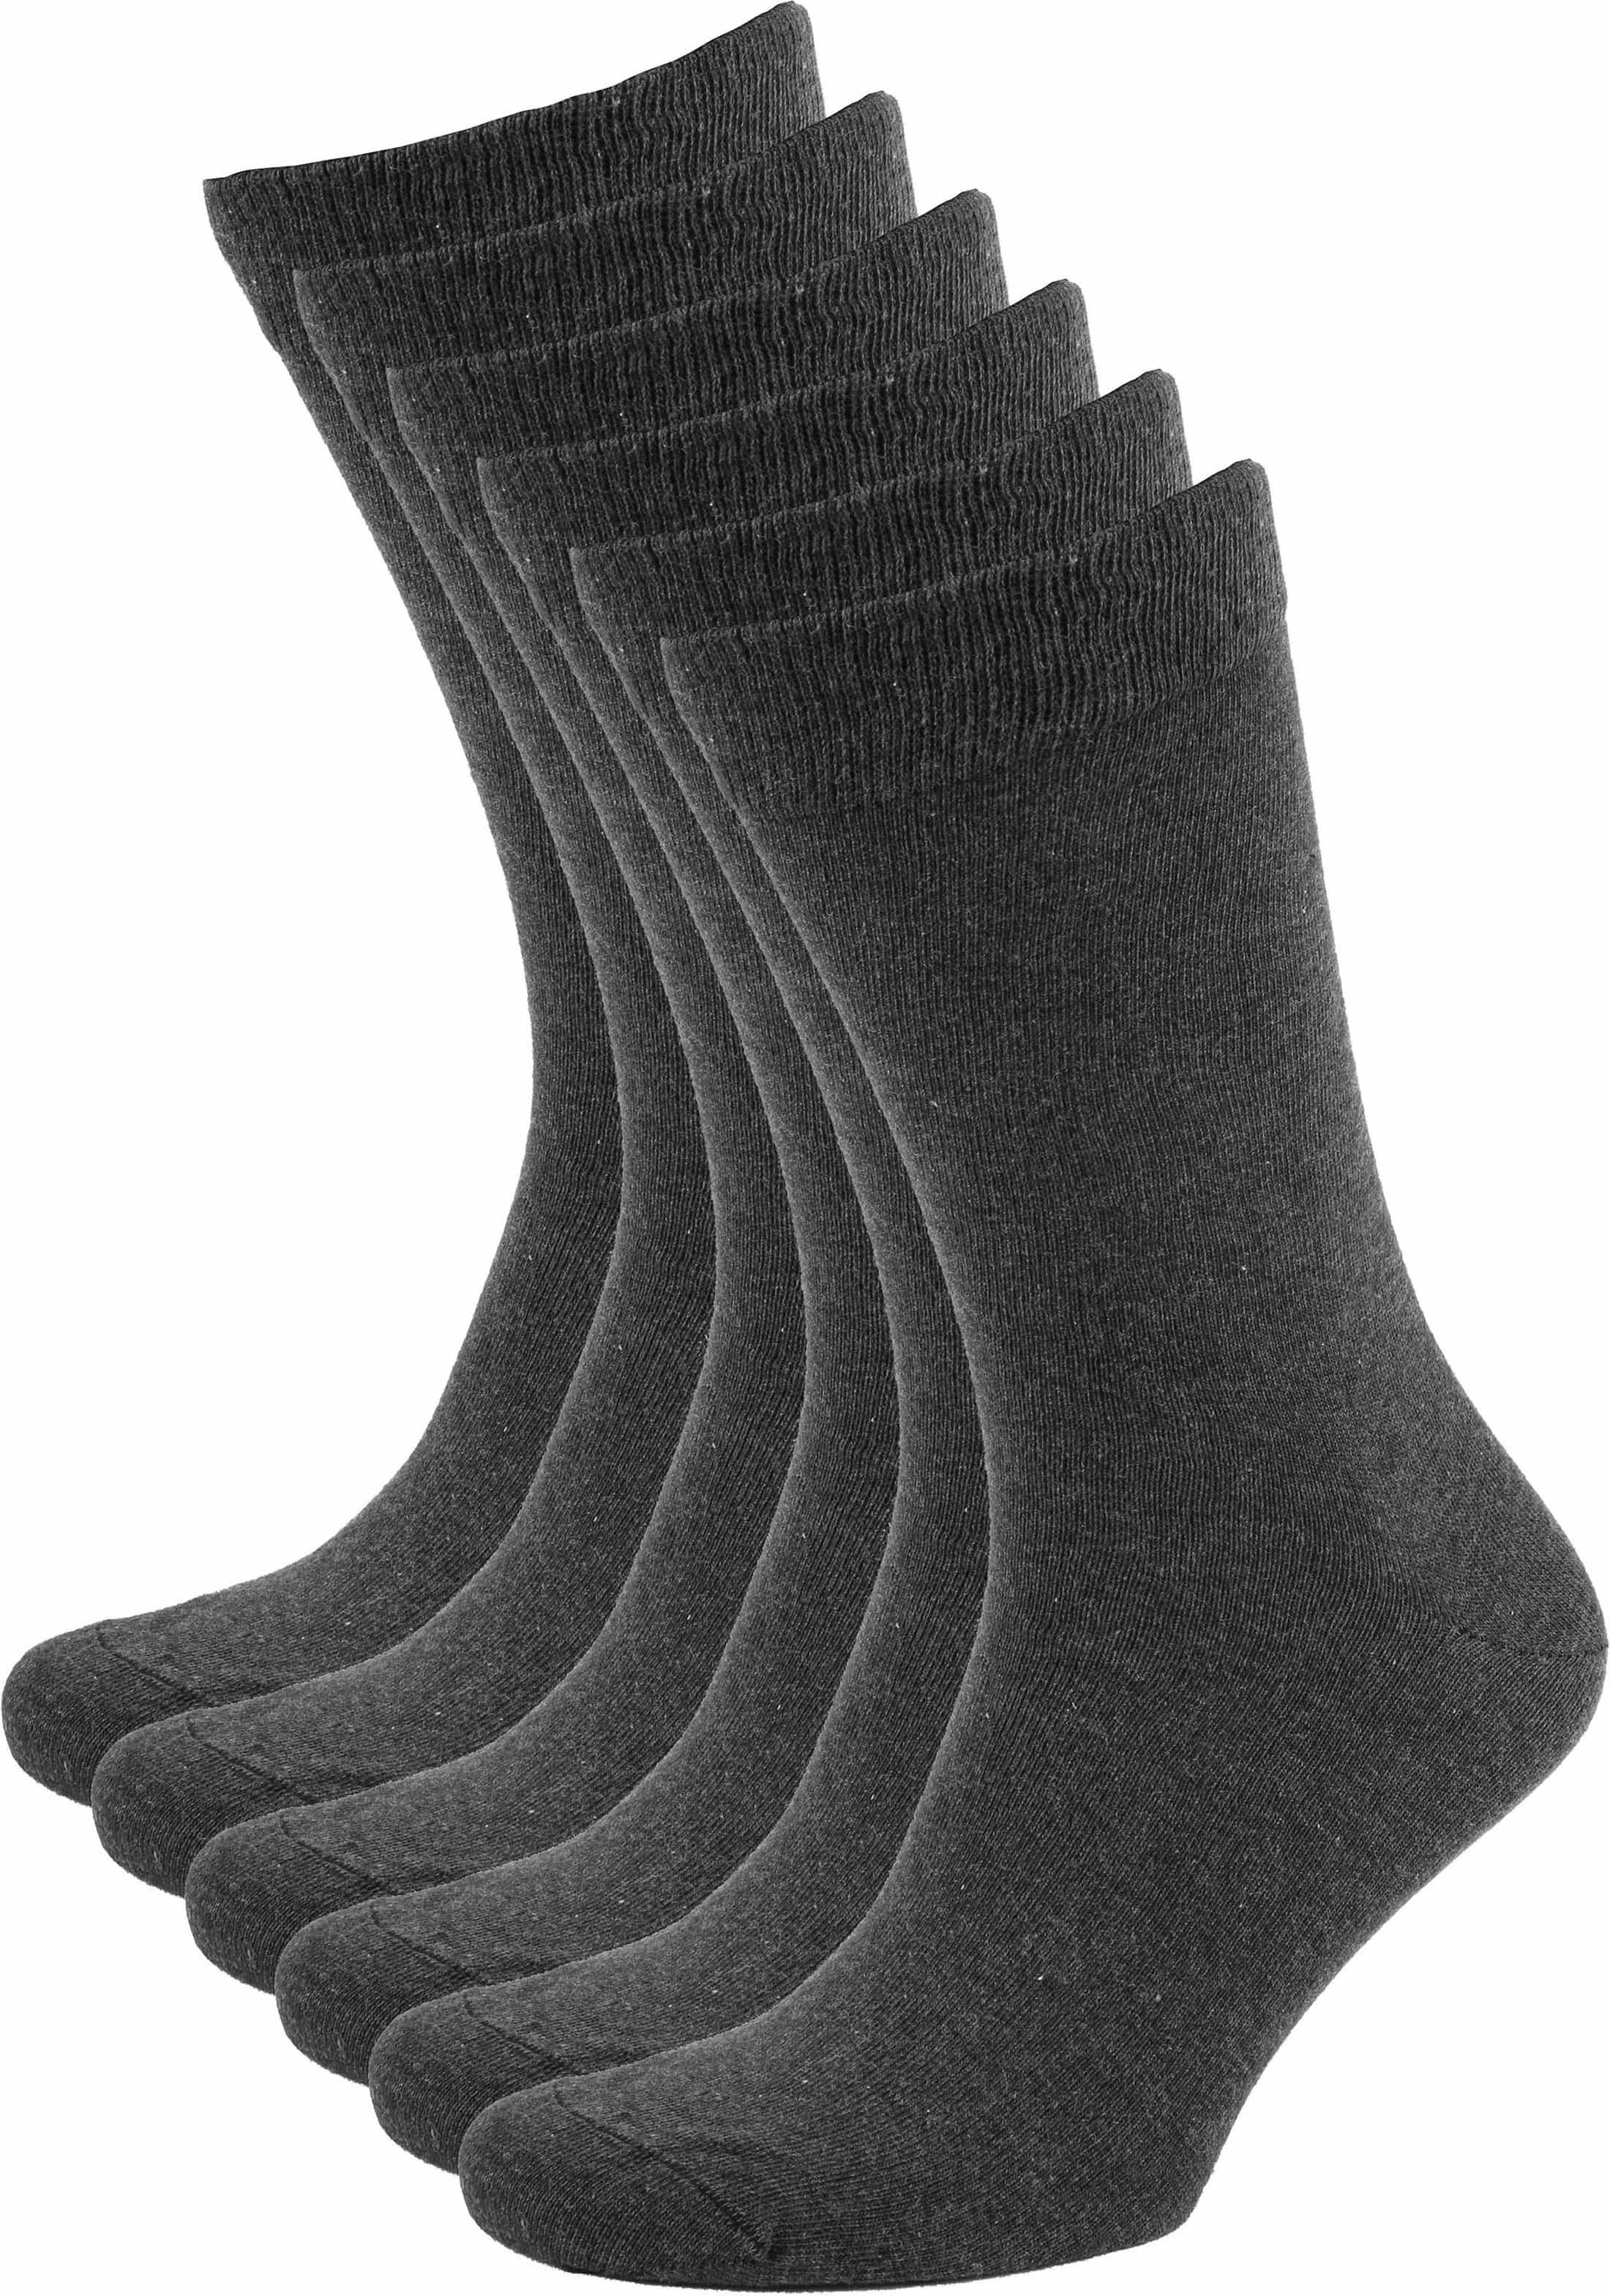 Suitable Bio Cotton Socks Dark Grey 6-Pack foto 0